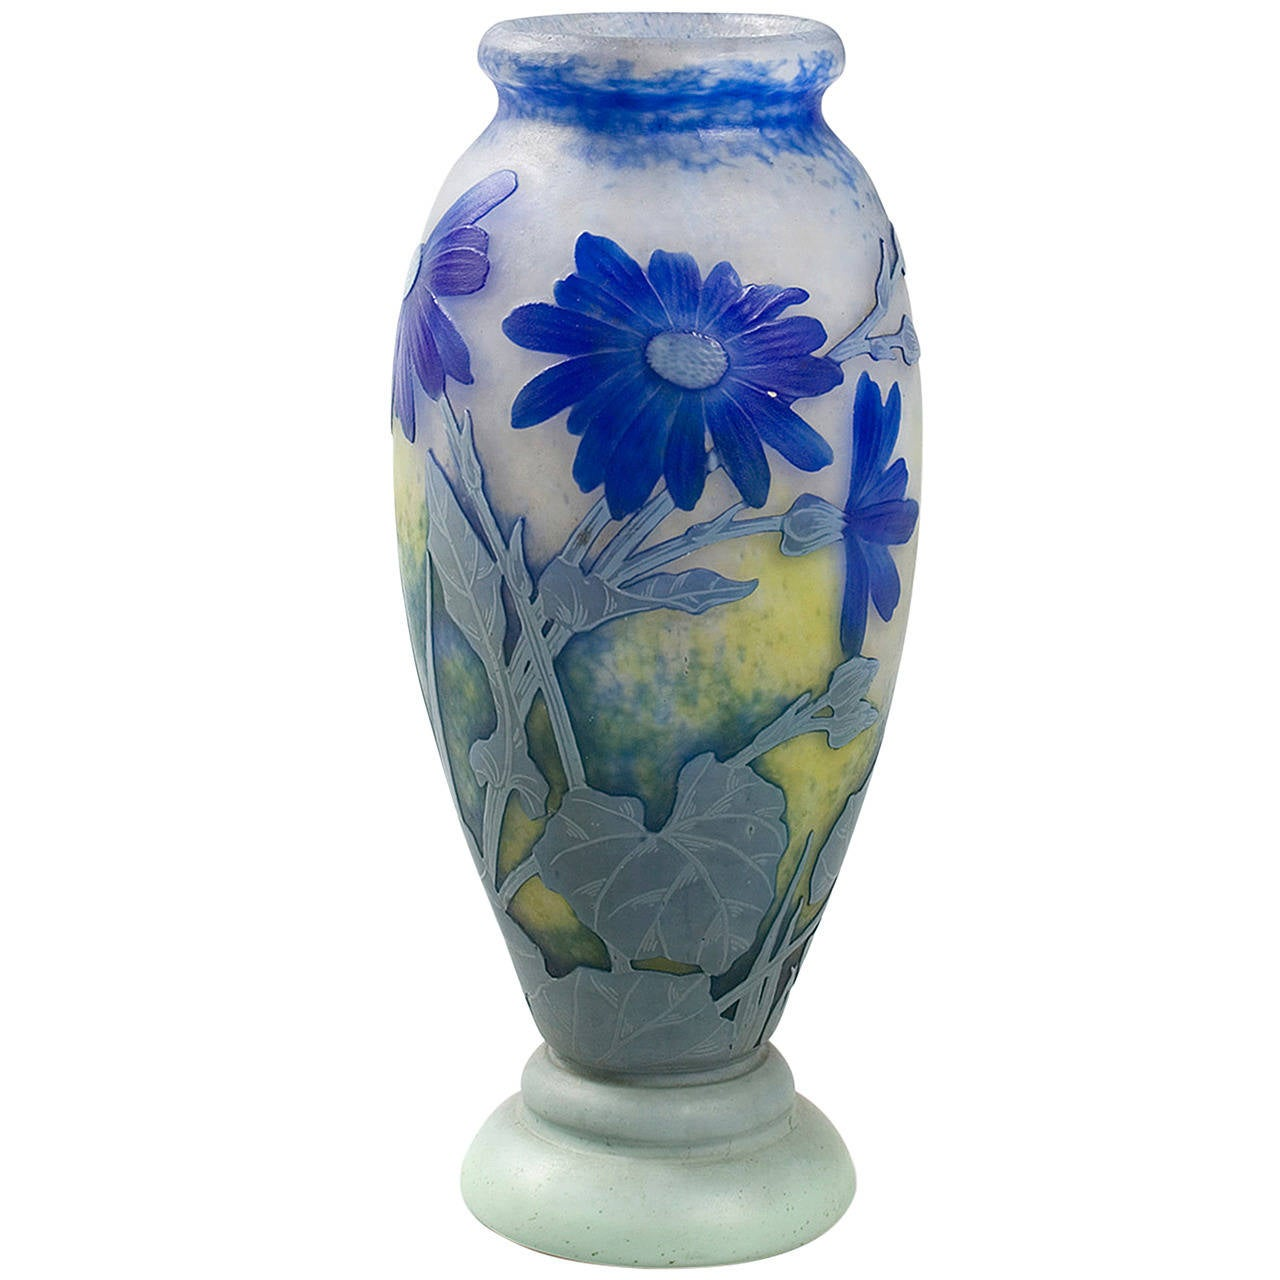 Daum Nancy French Art Nouveau Cameo Glass Vase For Sale at